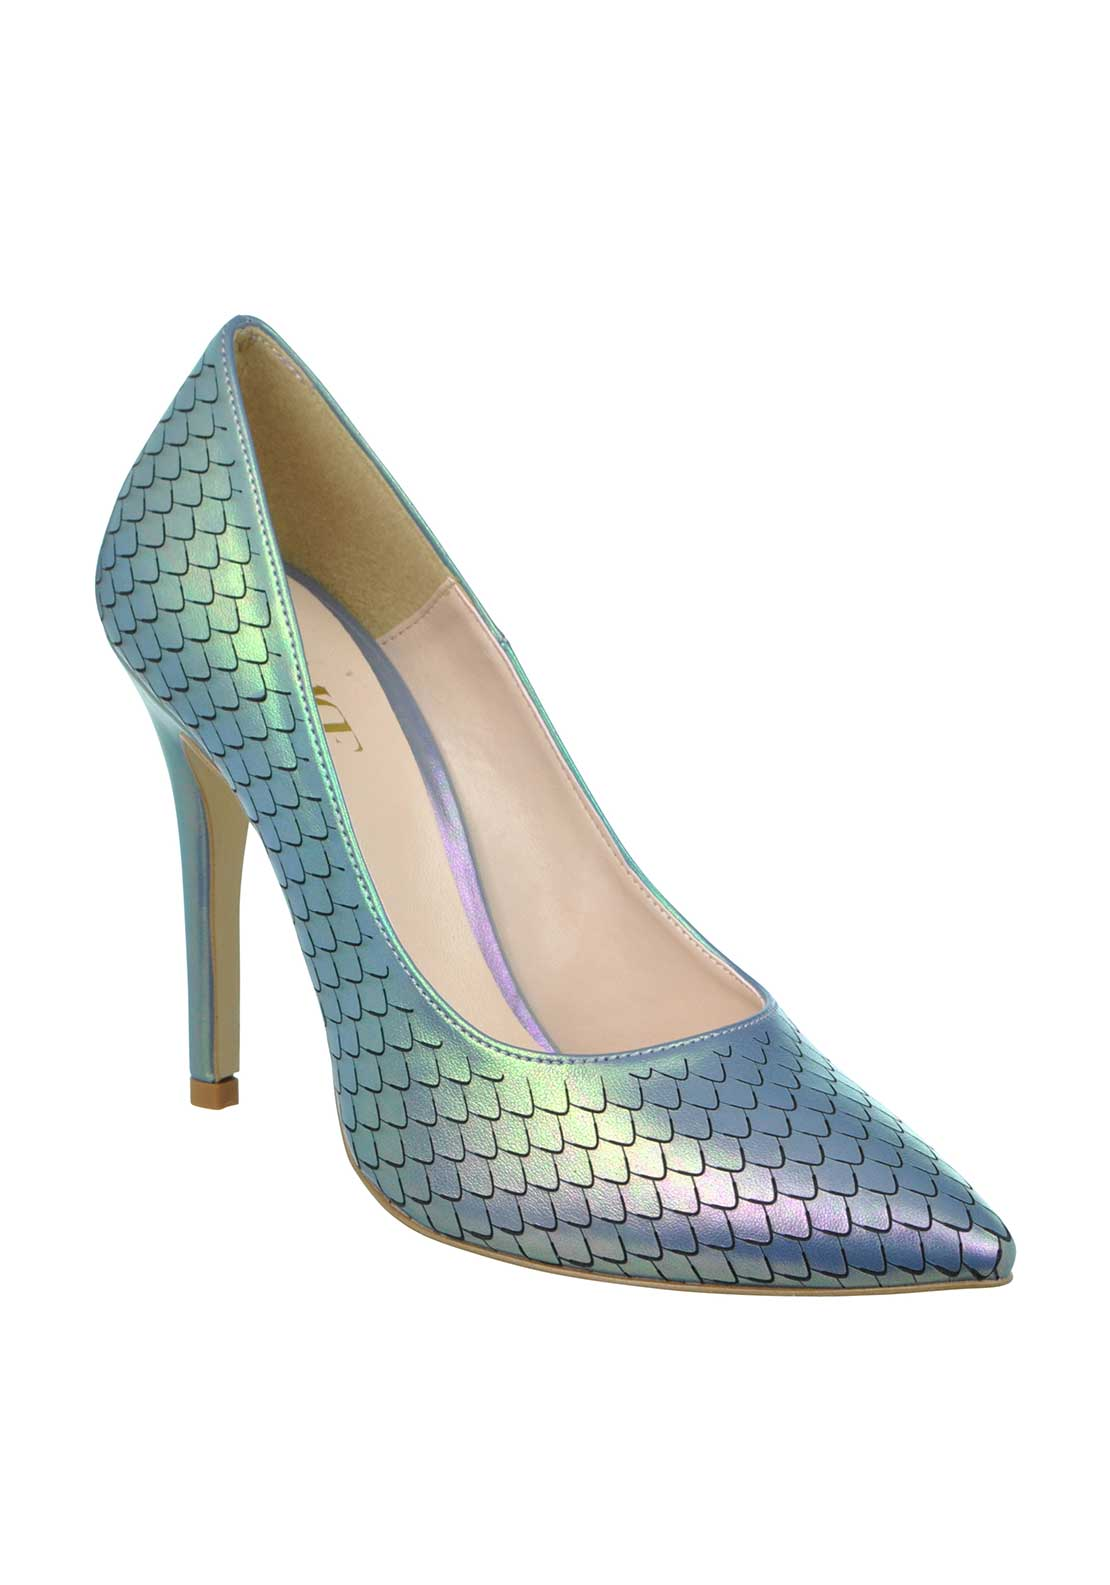 McElhinney's Shimmering Mermaid Print Pointed Toe Heeled Shoes, Blue